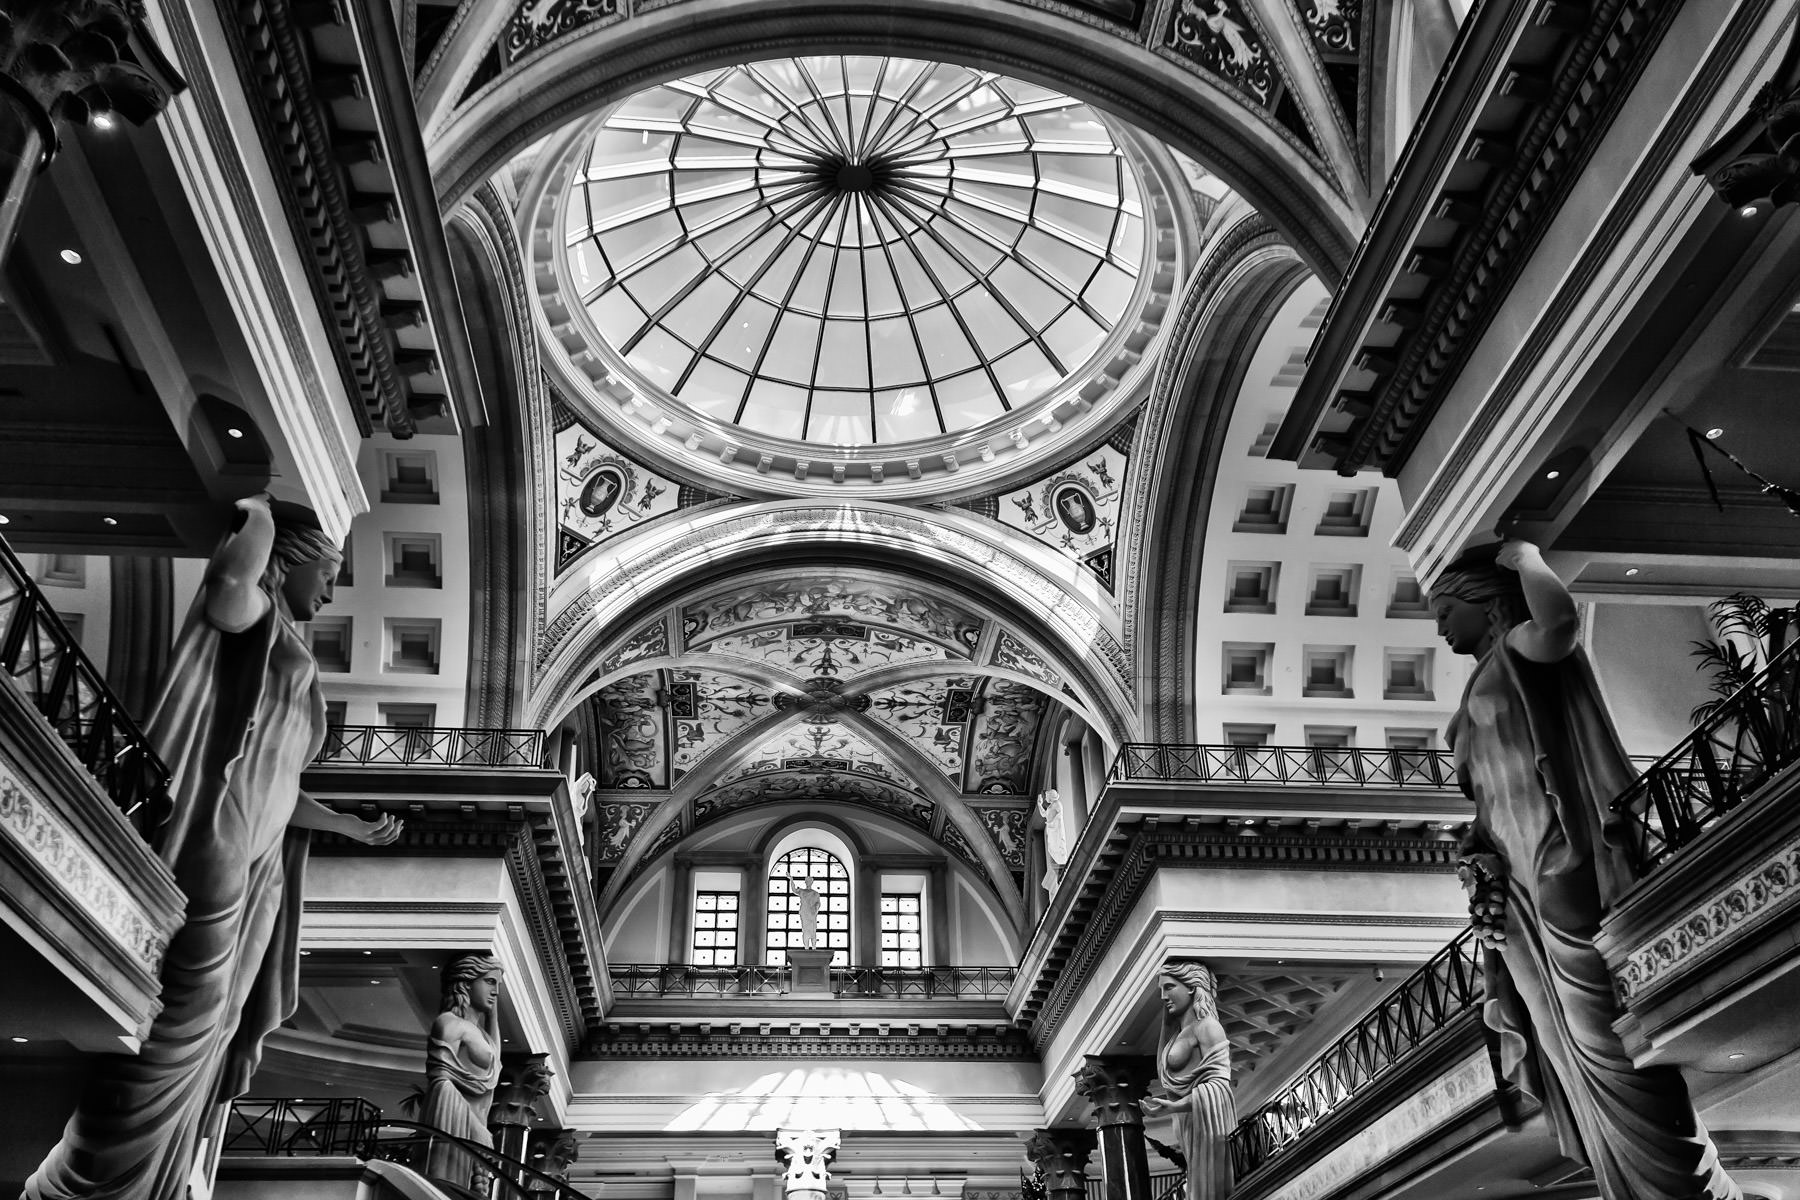 Vaulted ceilings soar high over the interior of the Forum Shops at Caesars Palace, Las Vegas.